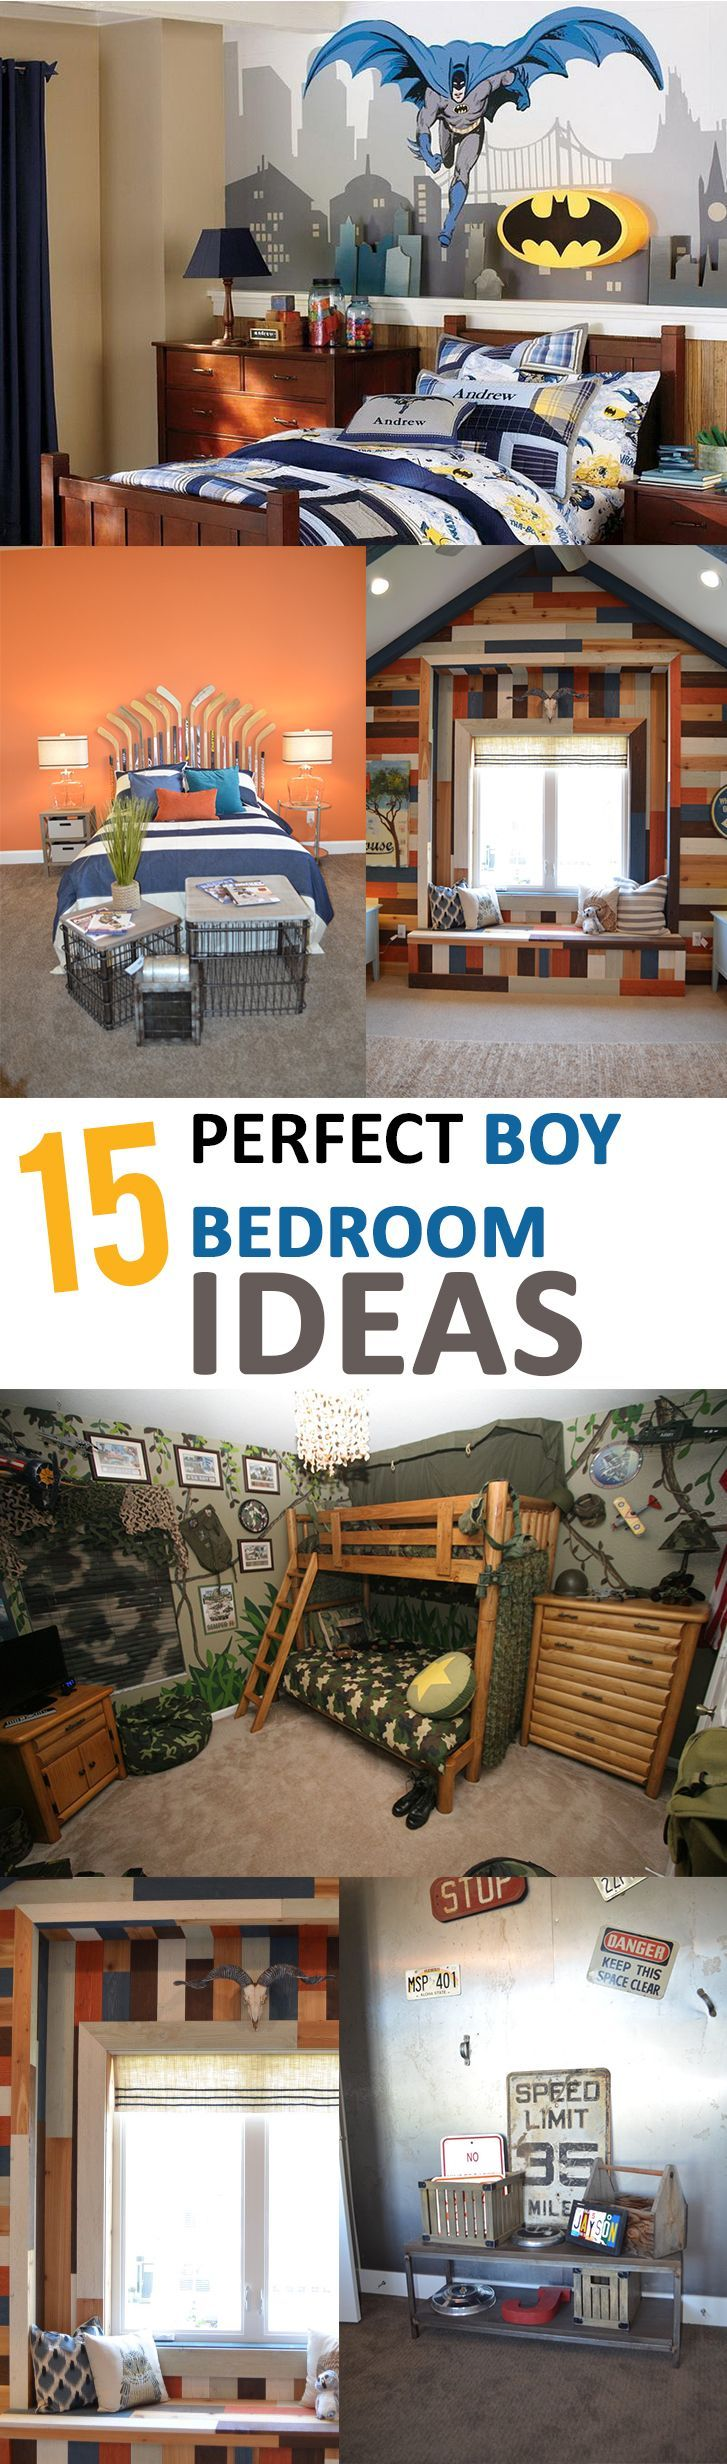 15 Perfect Boy Bedroom Ideas  // For more family resources visit www.tots-tweens.com! :)